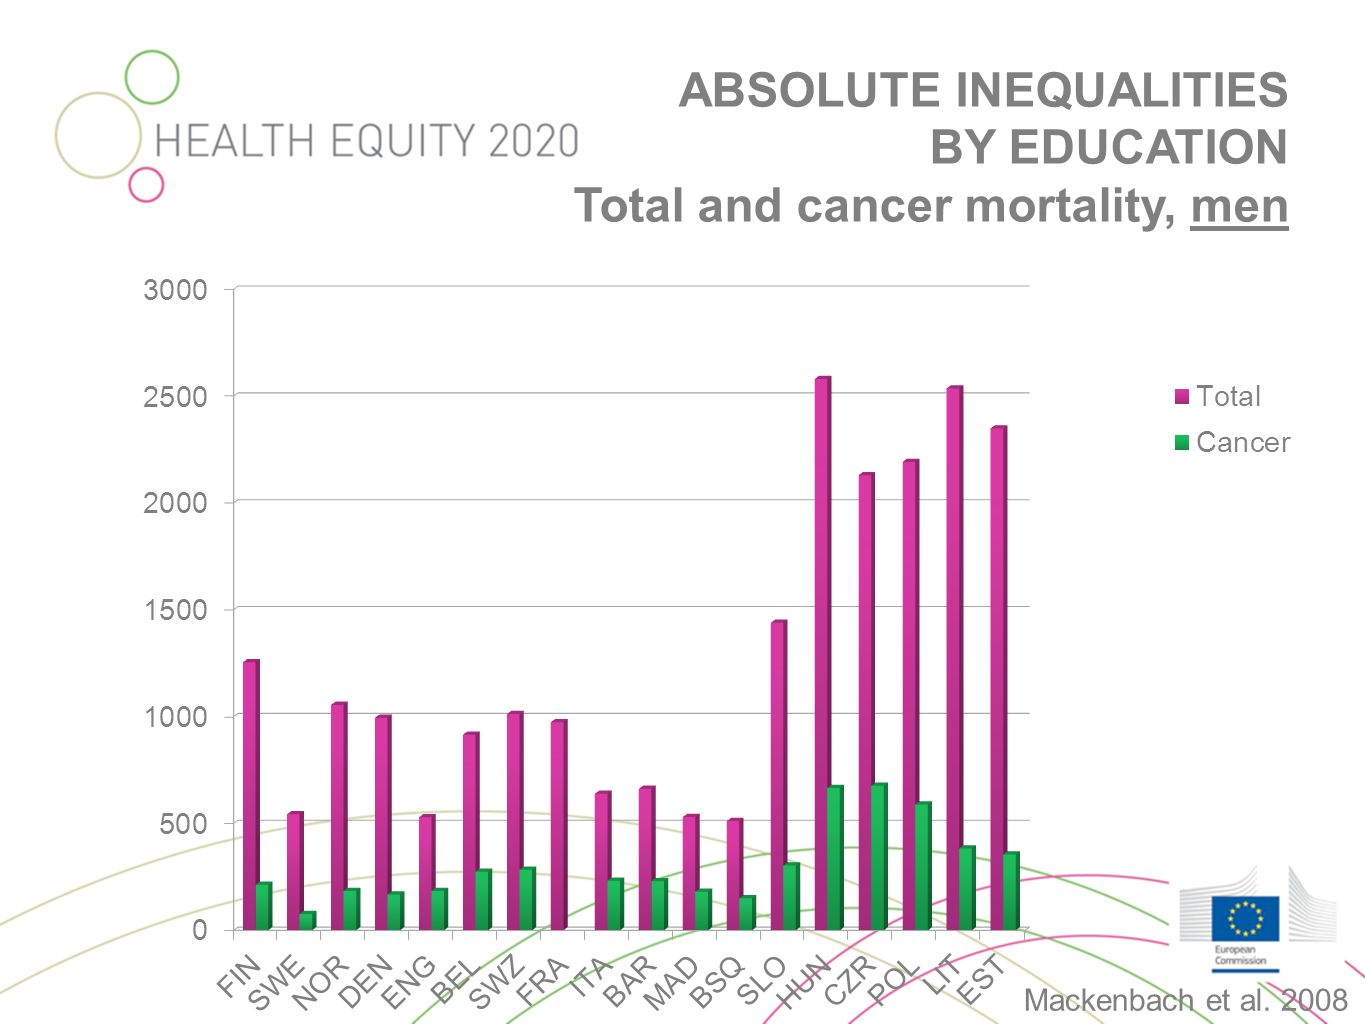 ABSOLUTE INEQUALITIES BY EDUCATION Total and cancer mortality, men Mackenbach et al. 2008